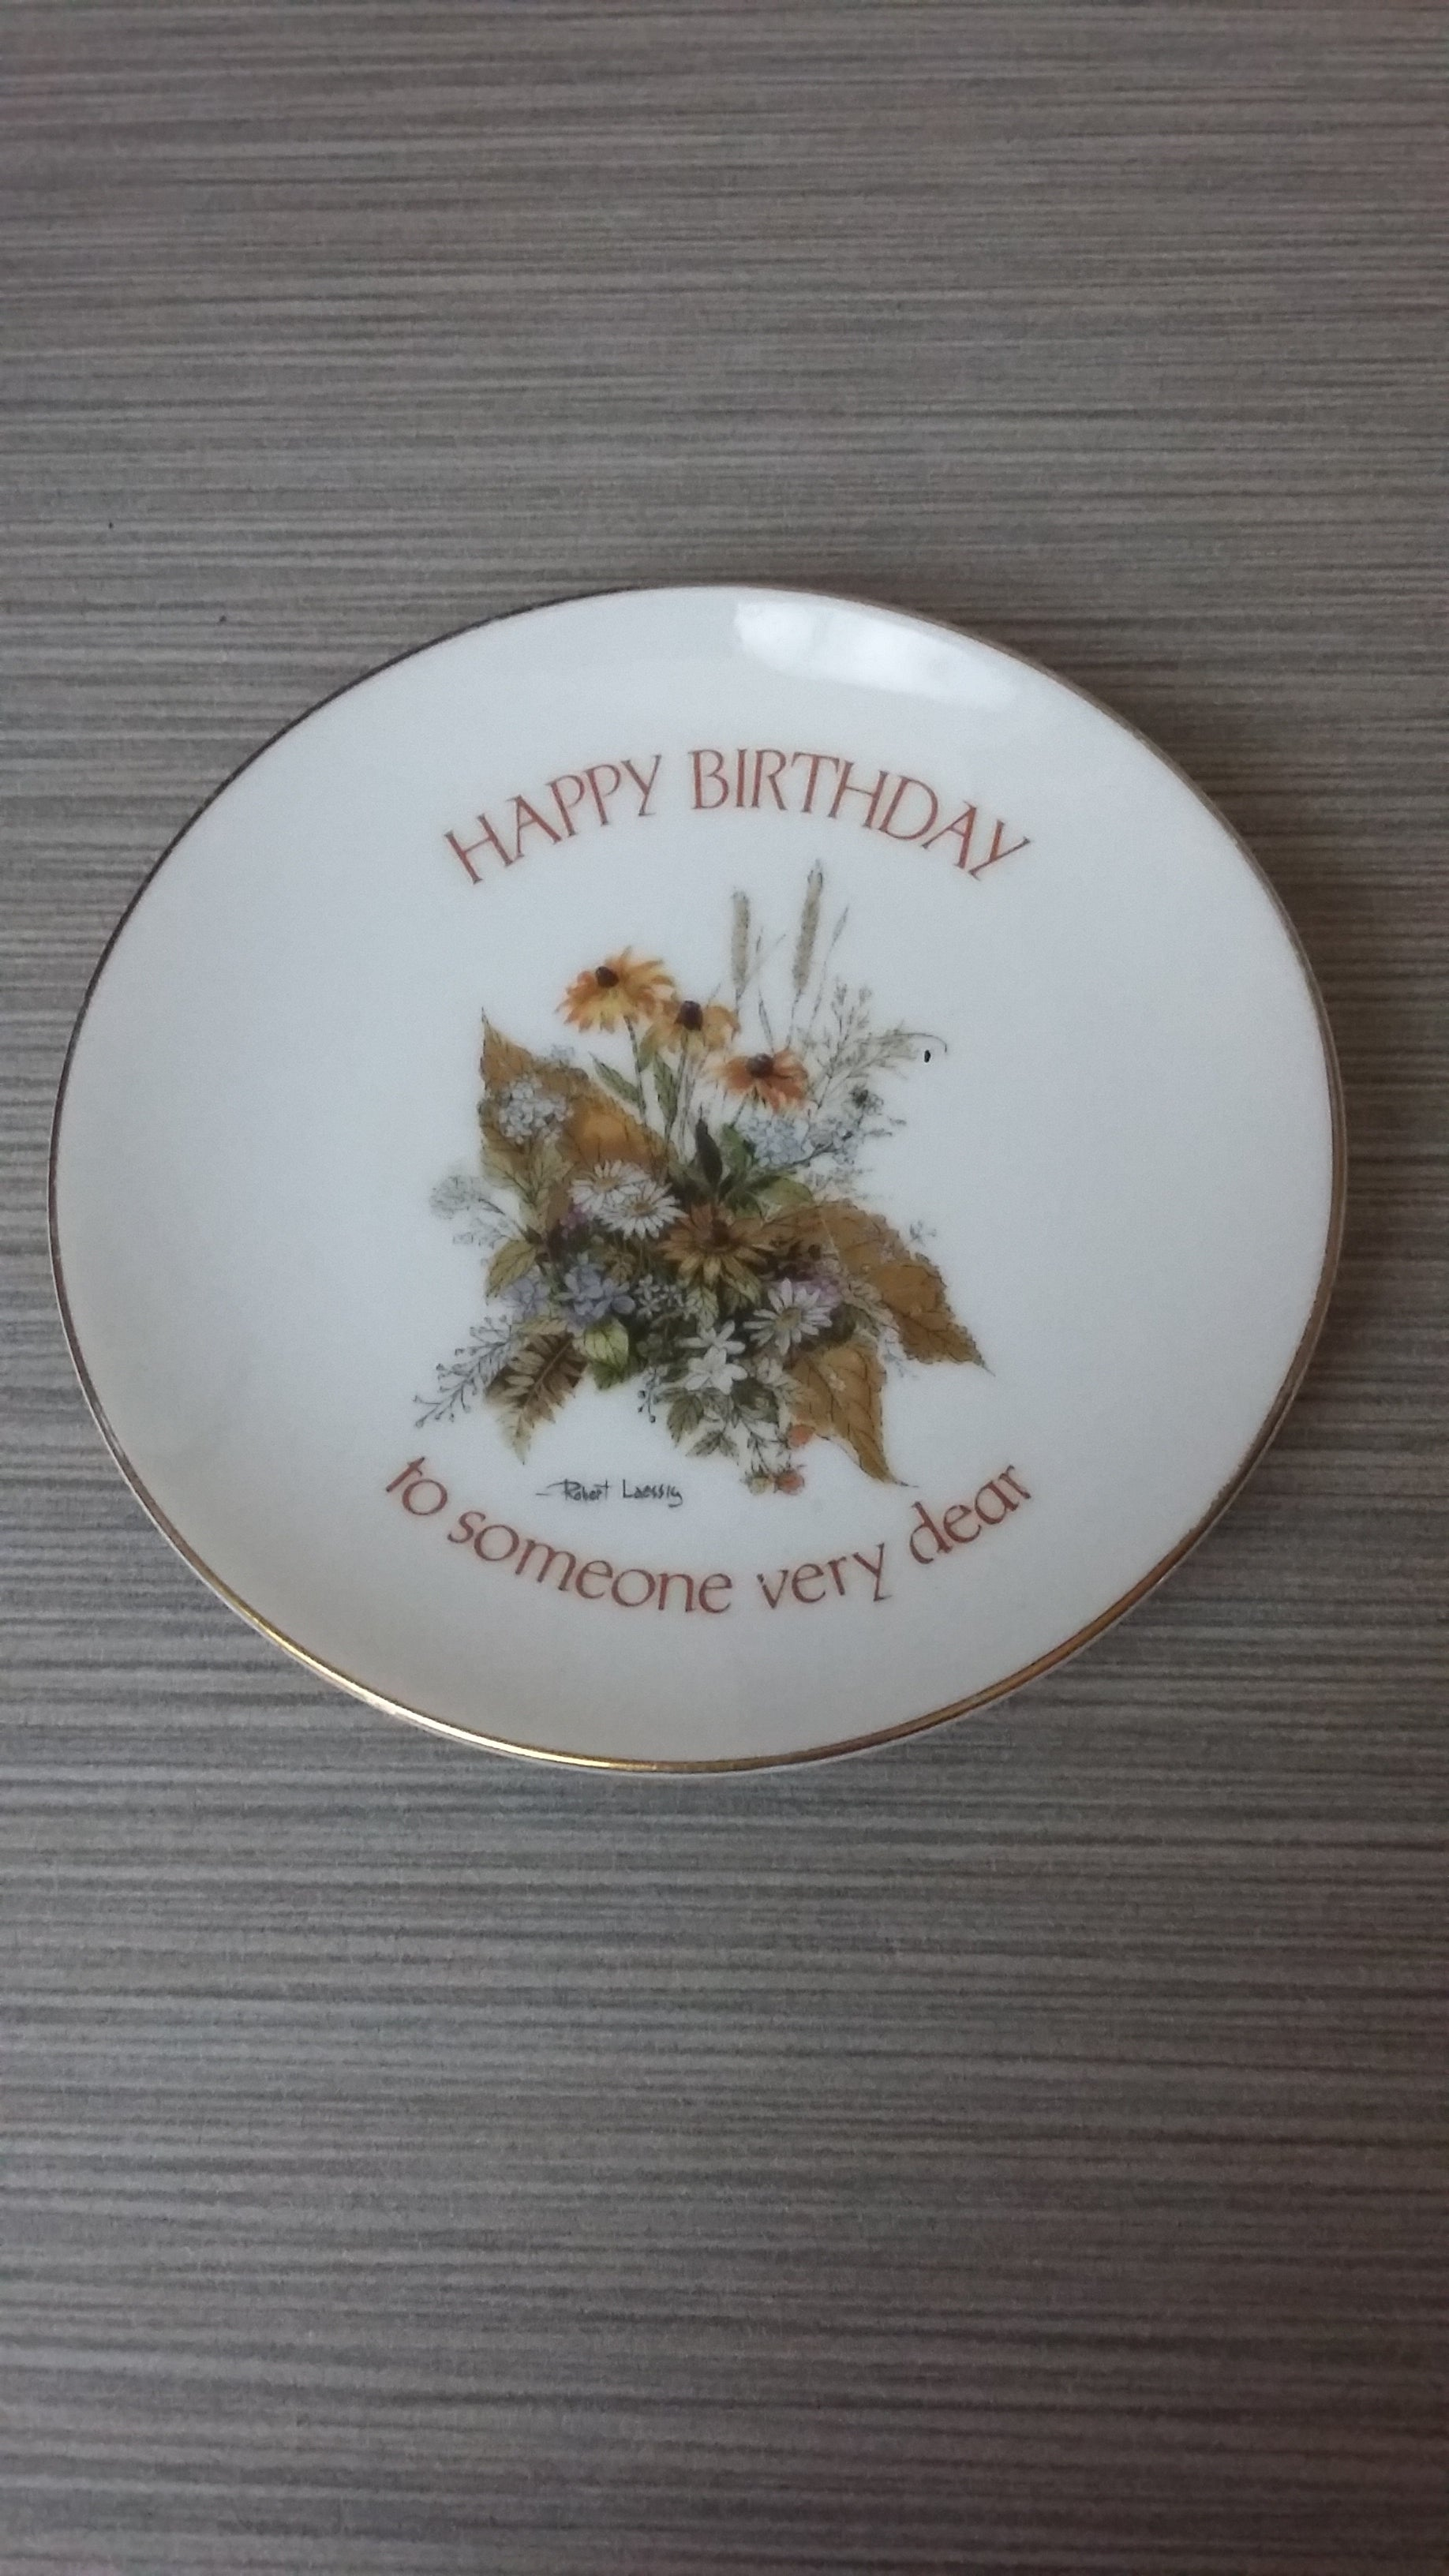 Vintage Collectible Happy Birthday Plate GOLD Trim - Japan